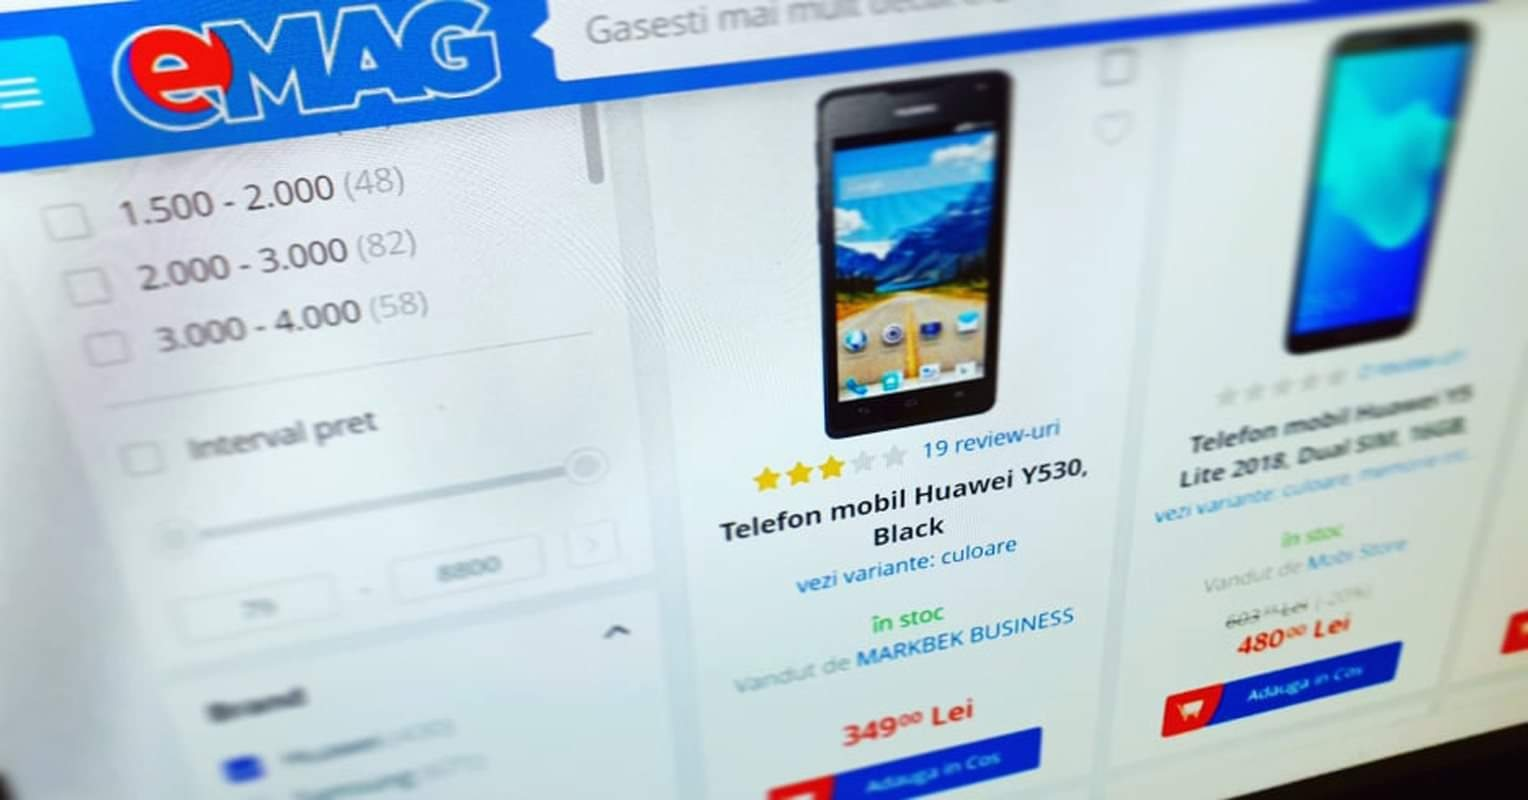 The Huawei phones at eMAG with the